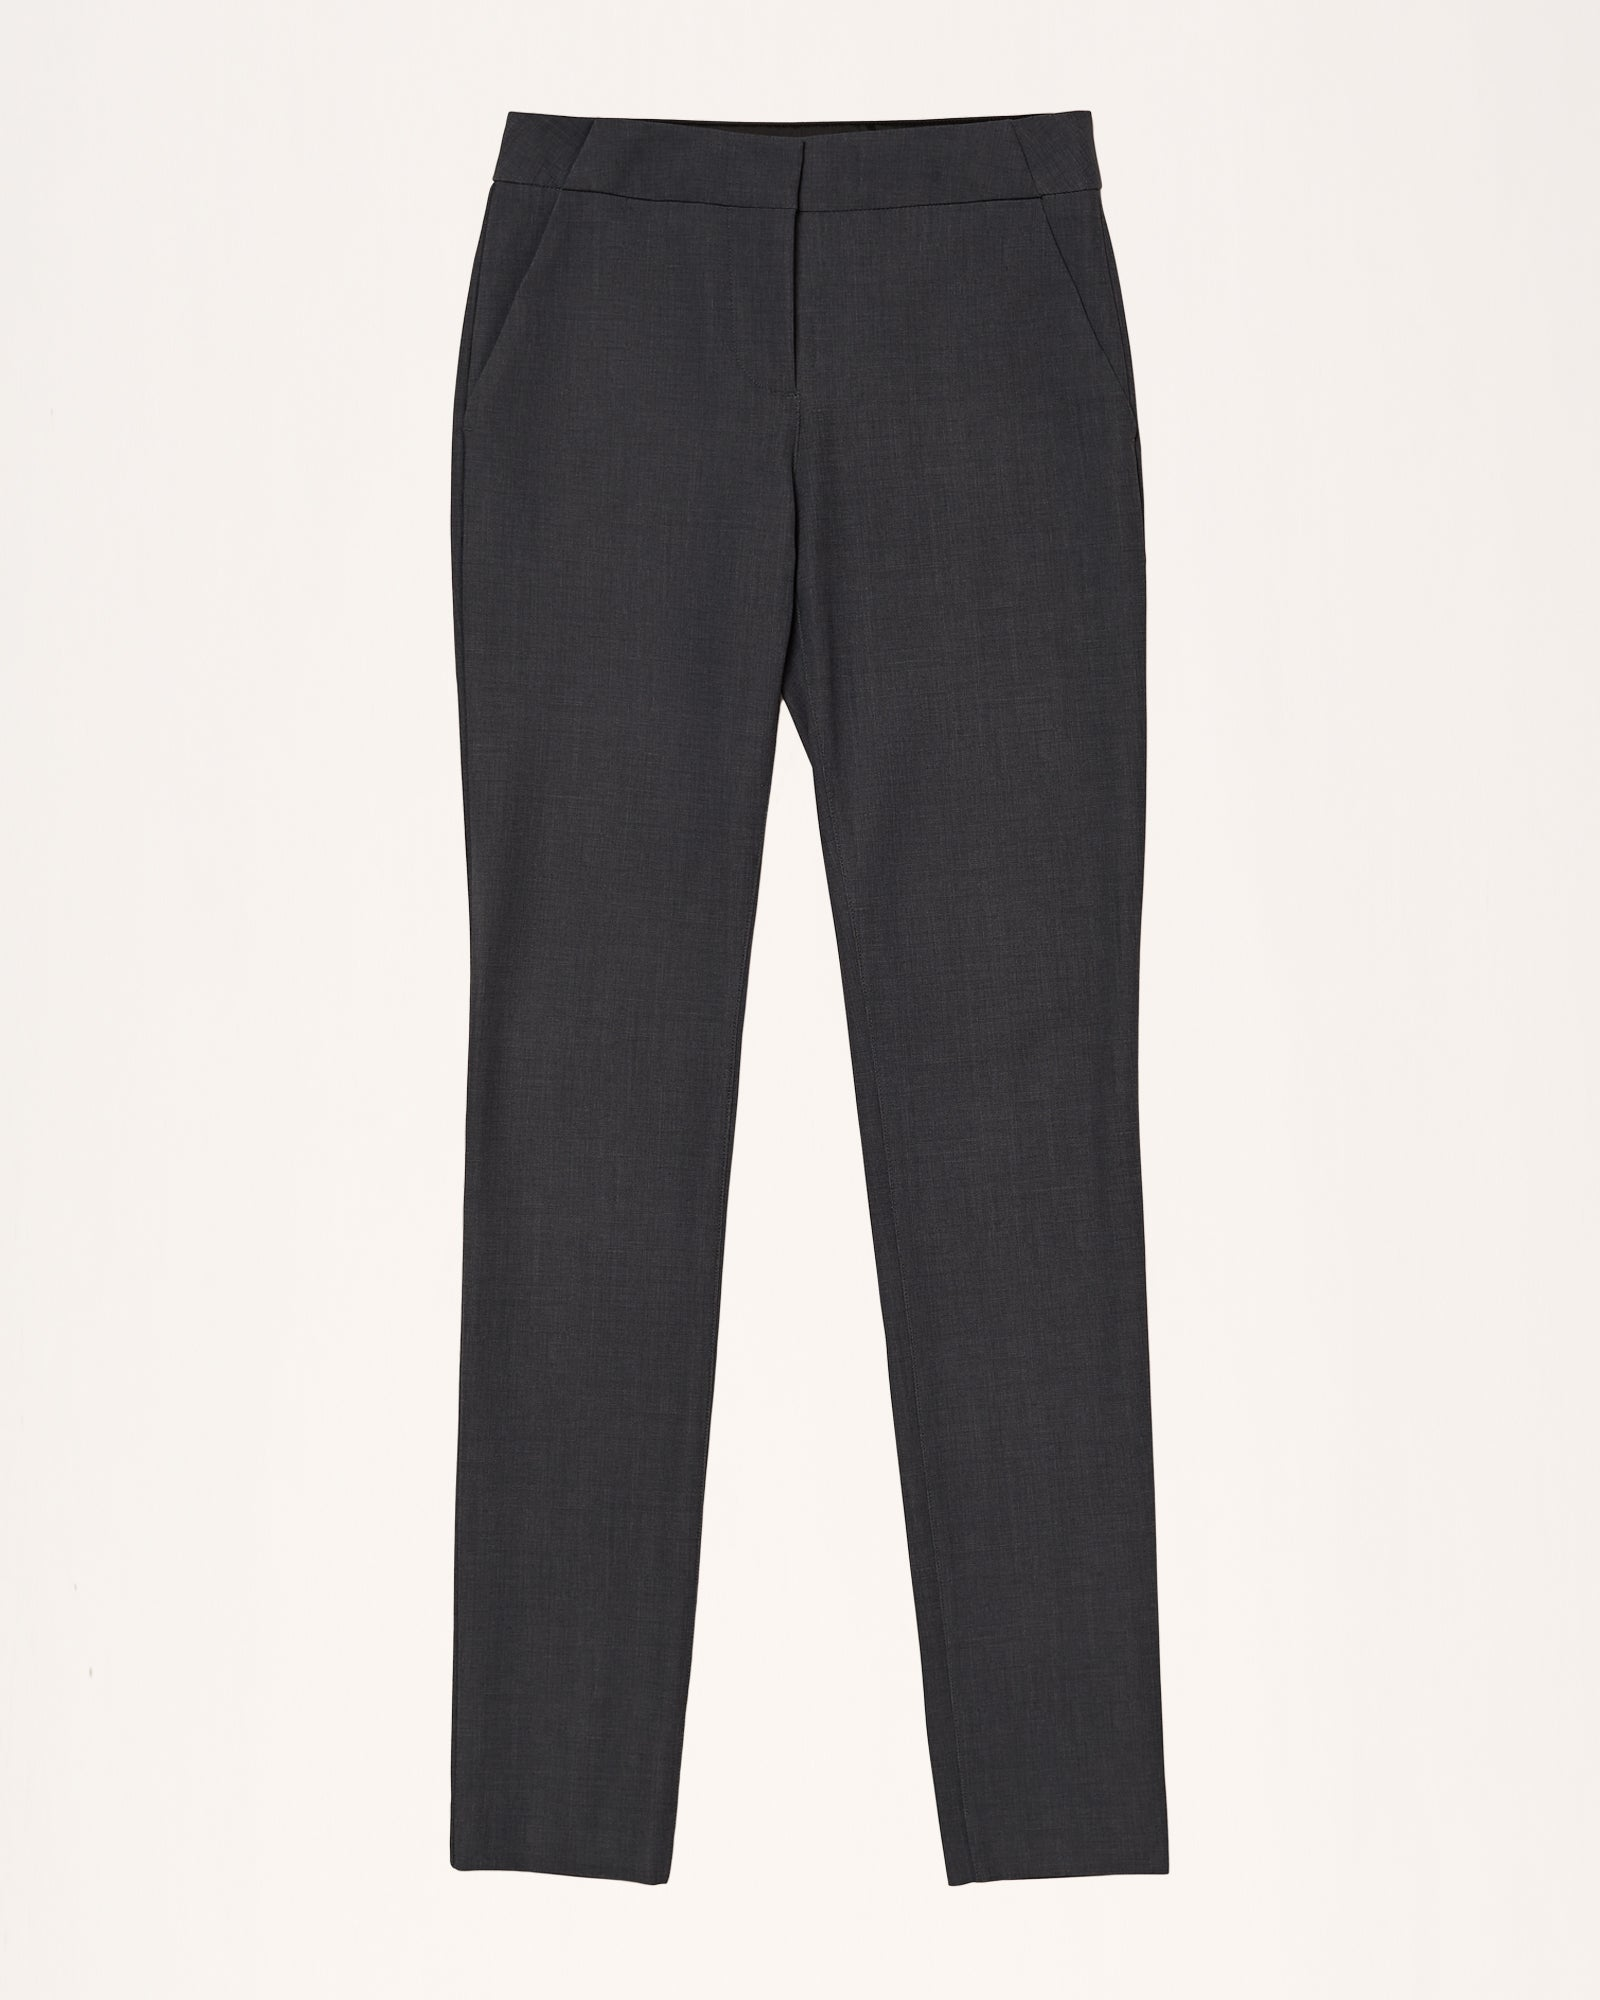 Power Move™ Trousers Charcoal 2.0